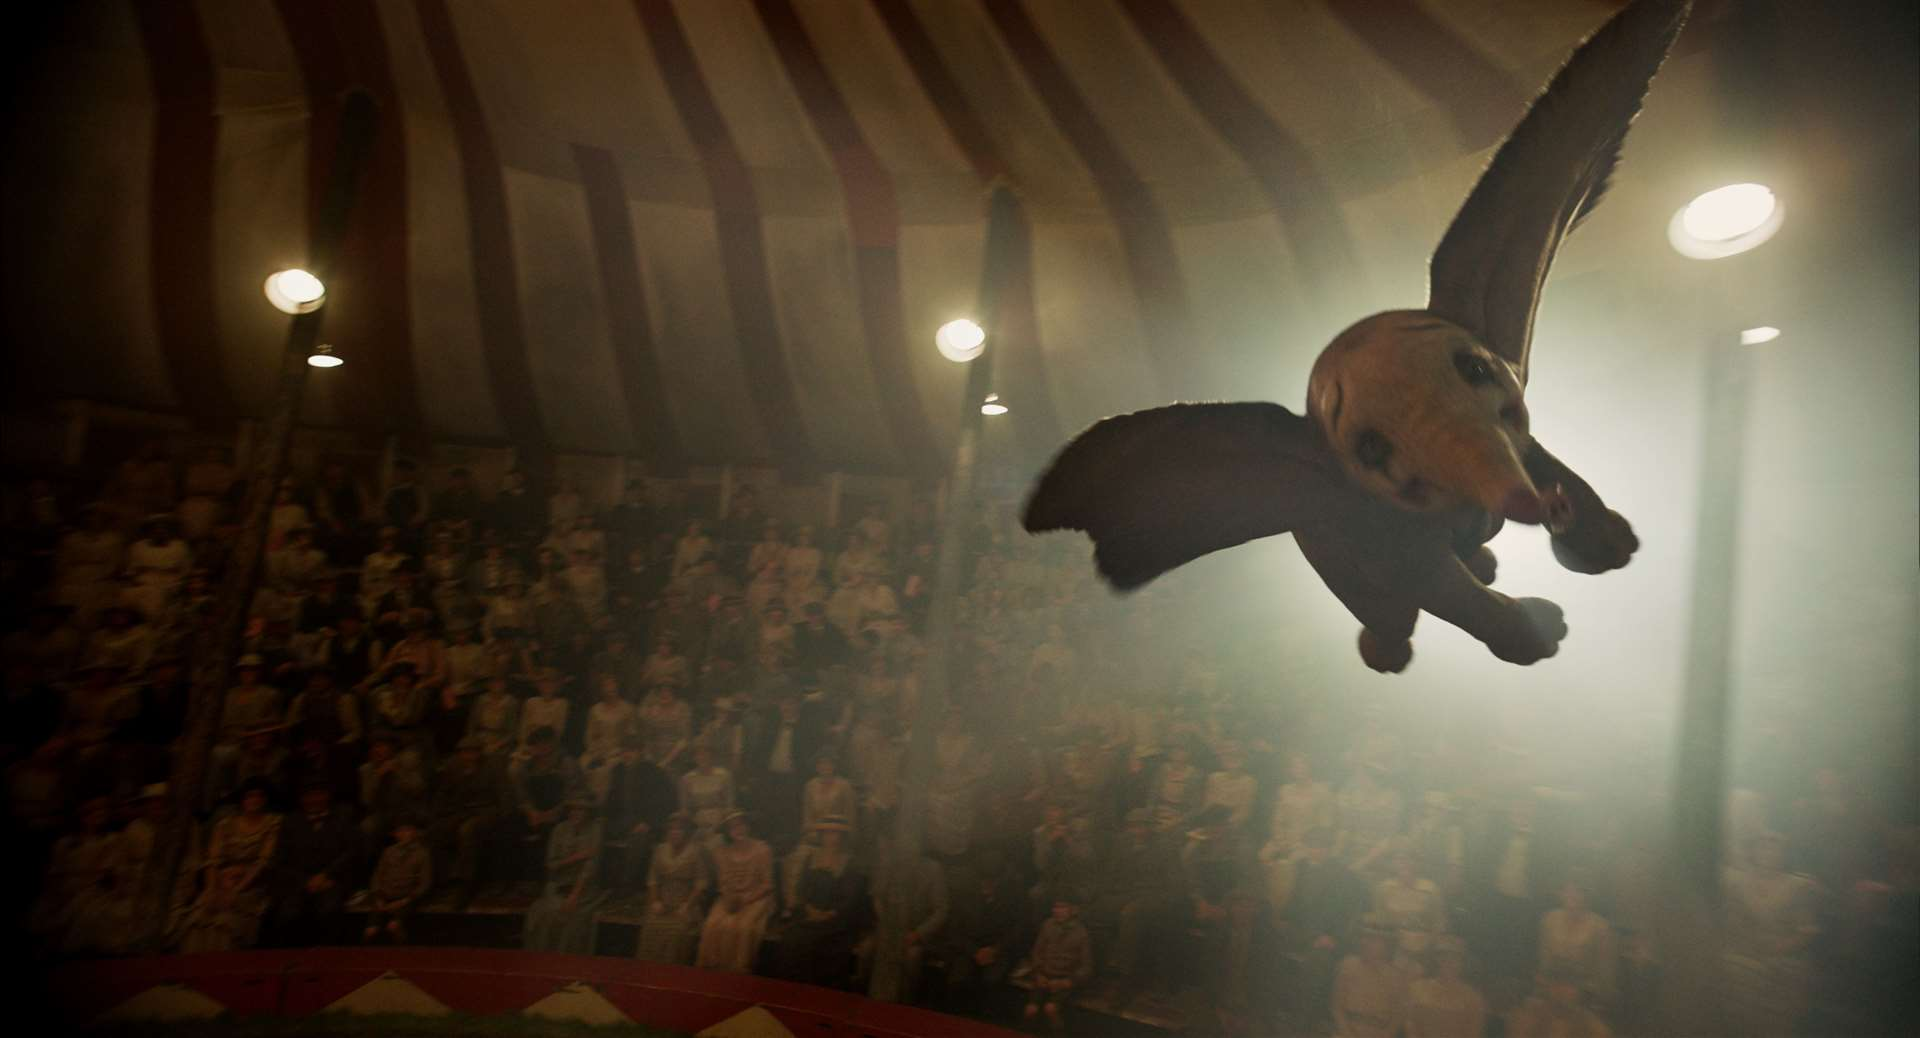 Dumbo flies into cinemas on March 29